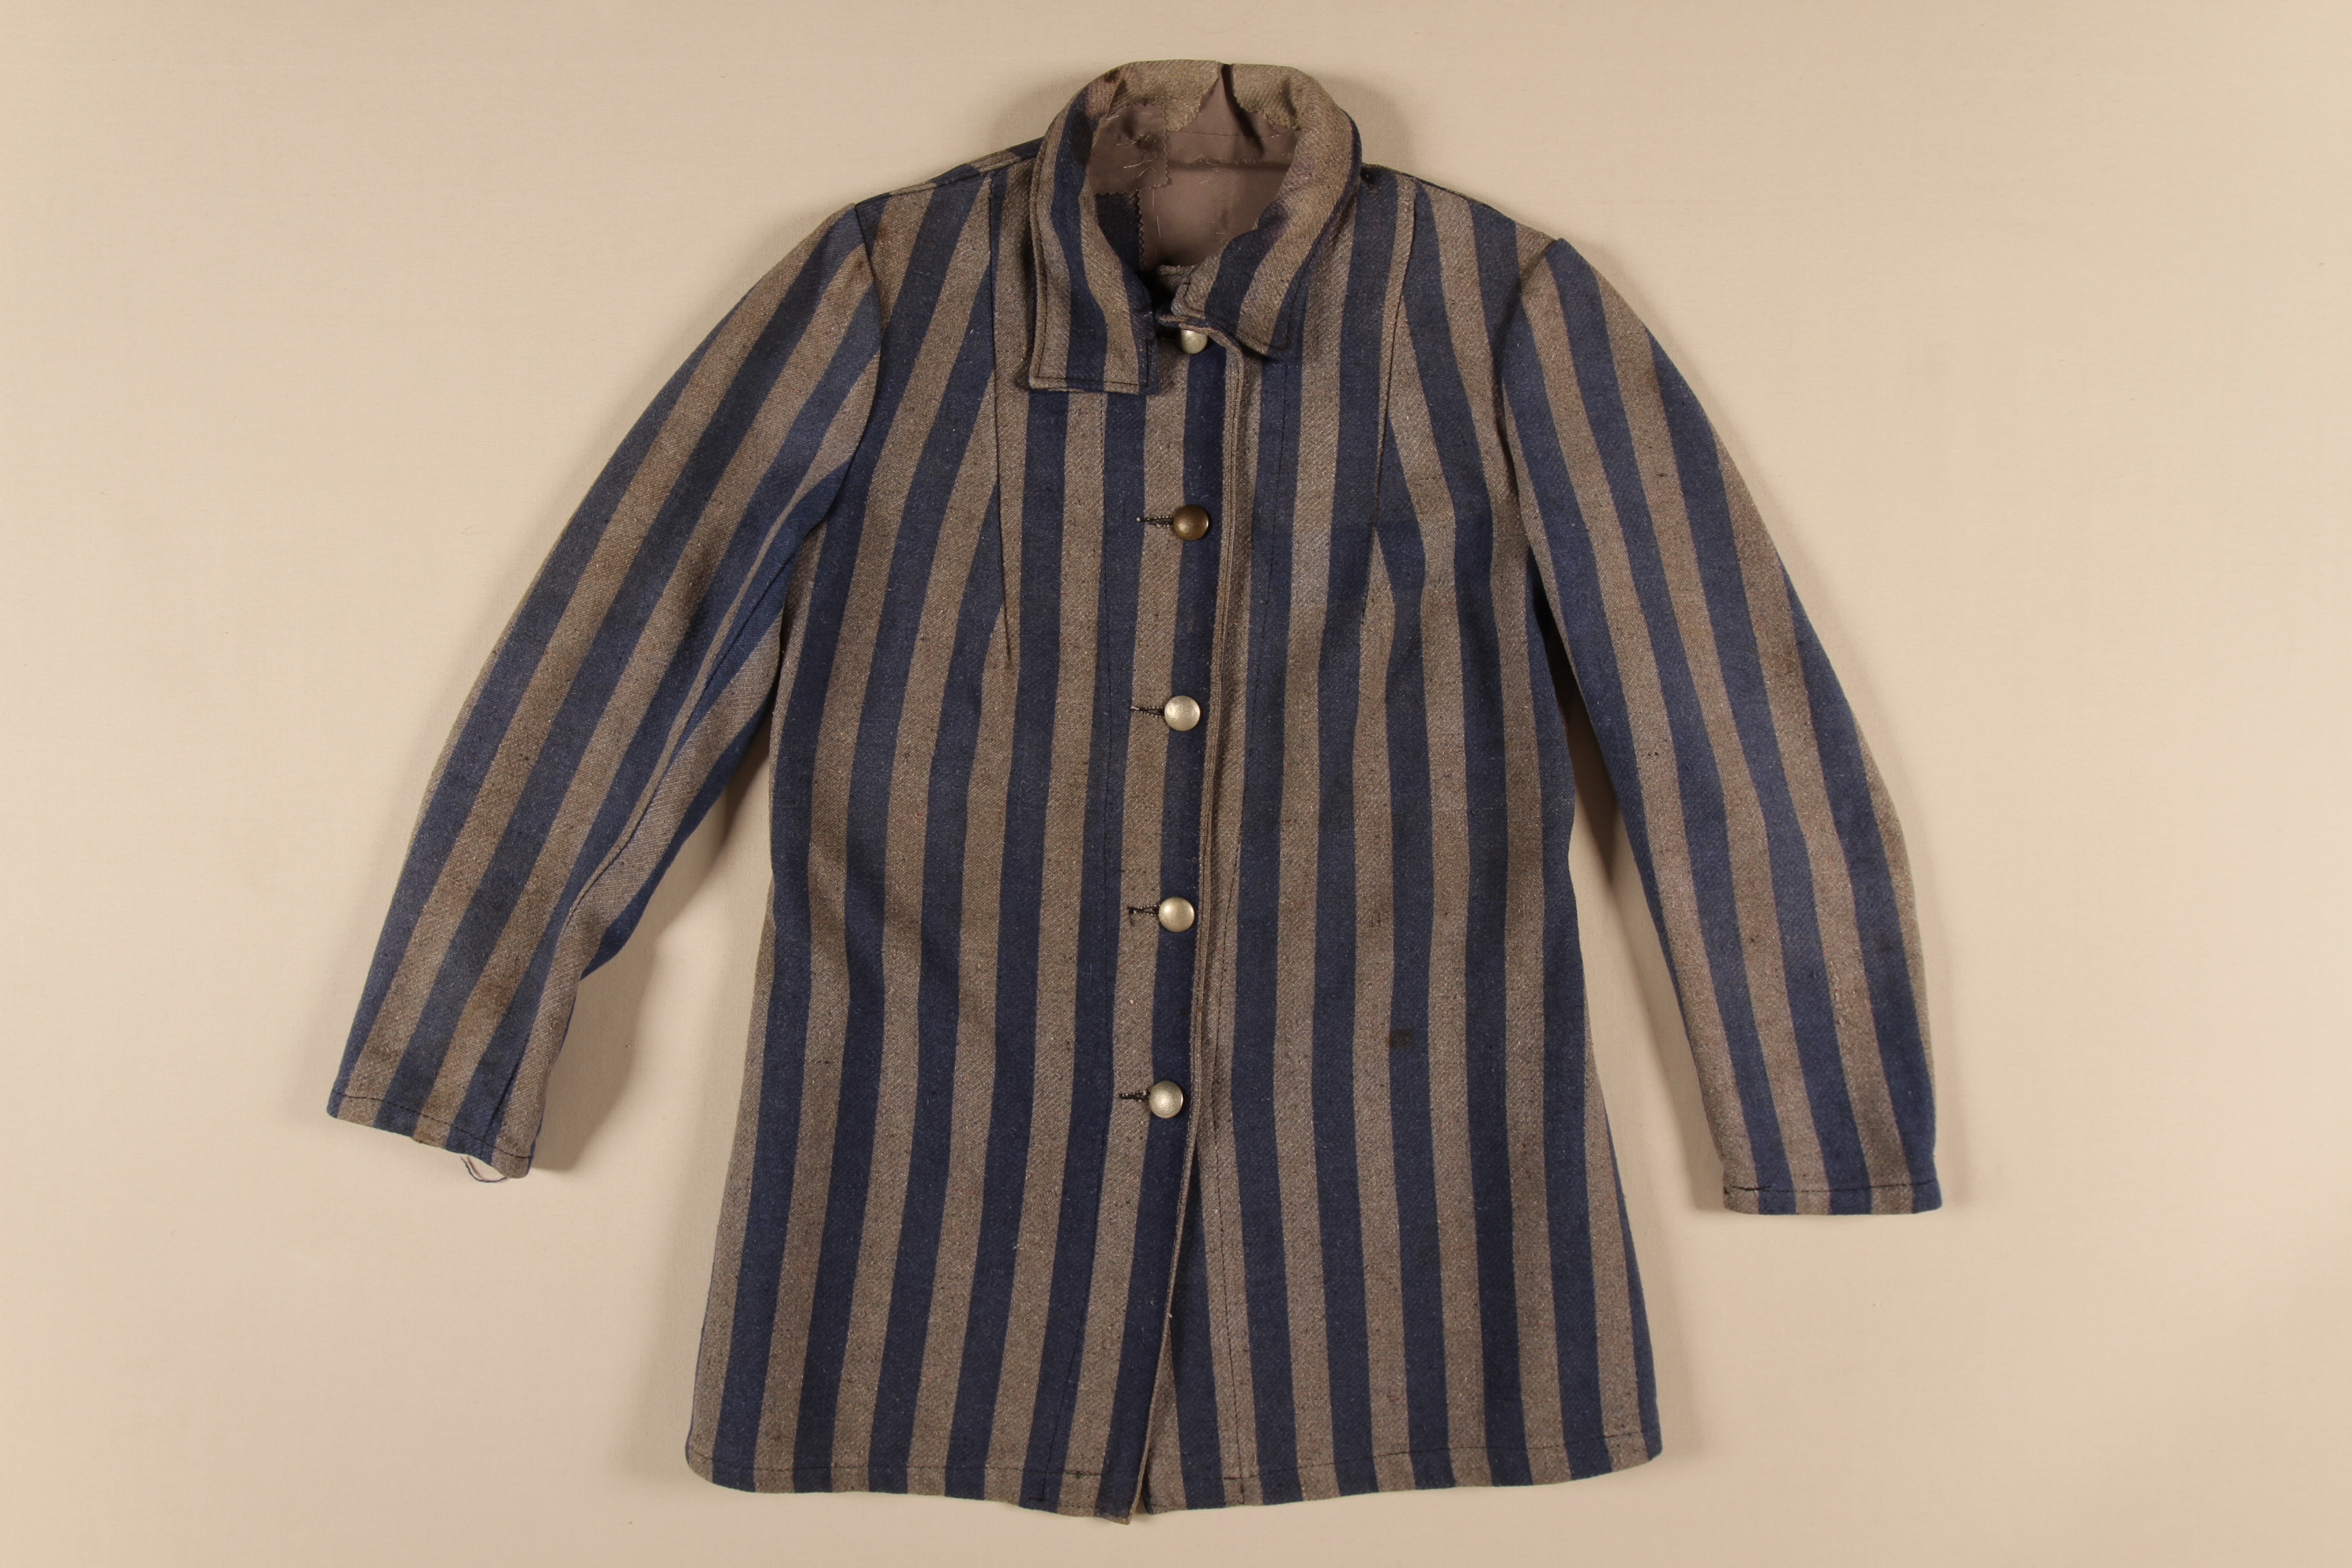 Uniform jacket worn by William Luksenberg while imprisoned in forced labor camps.